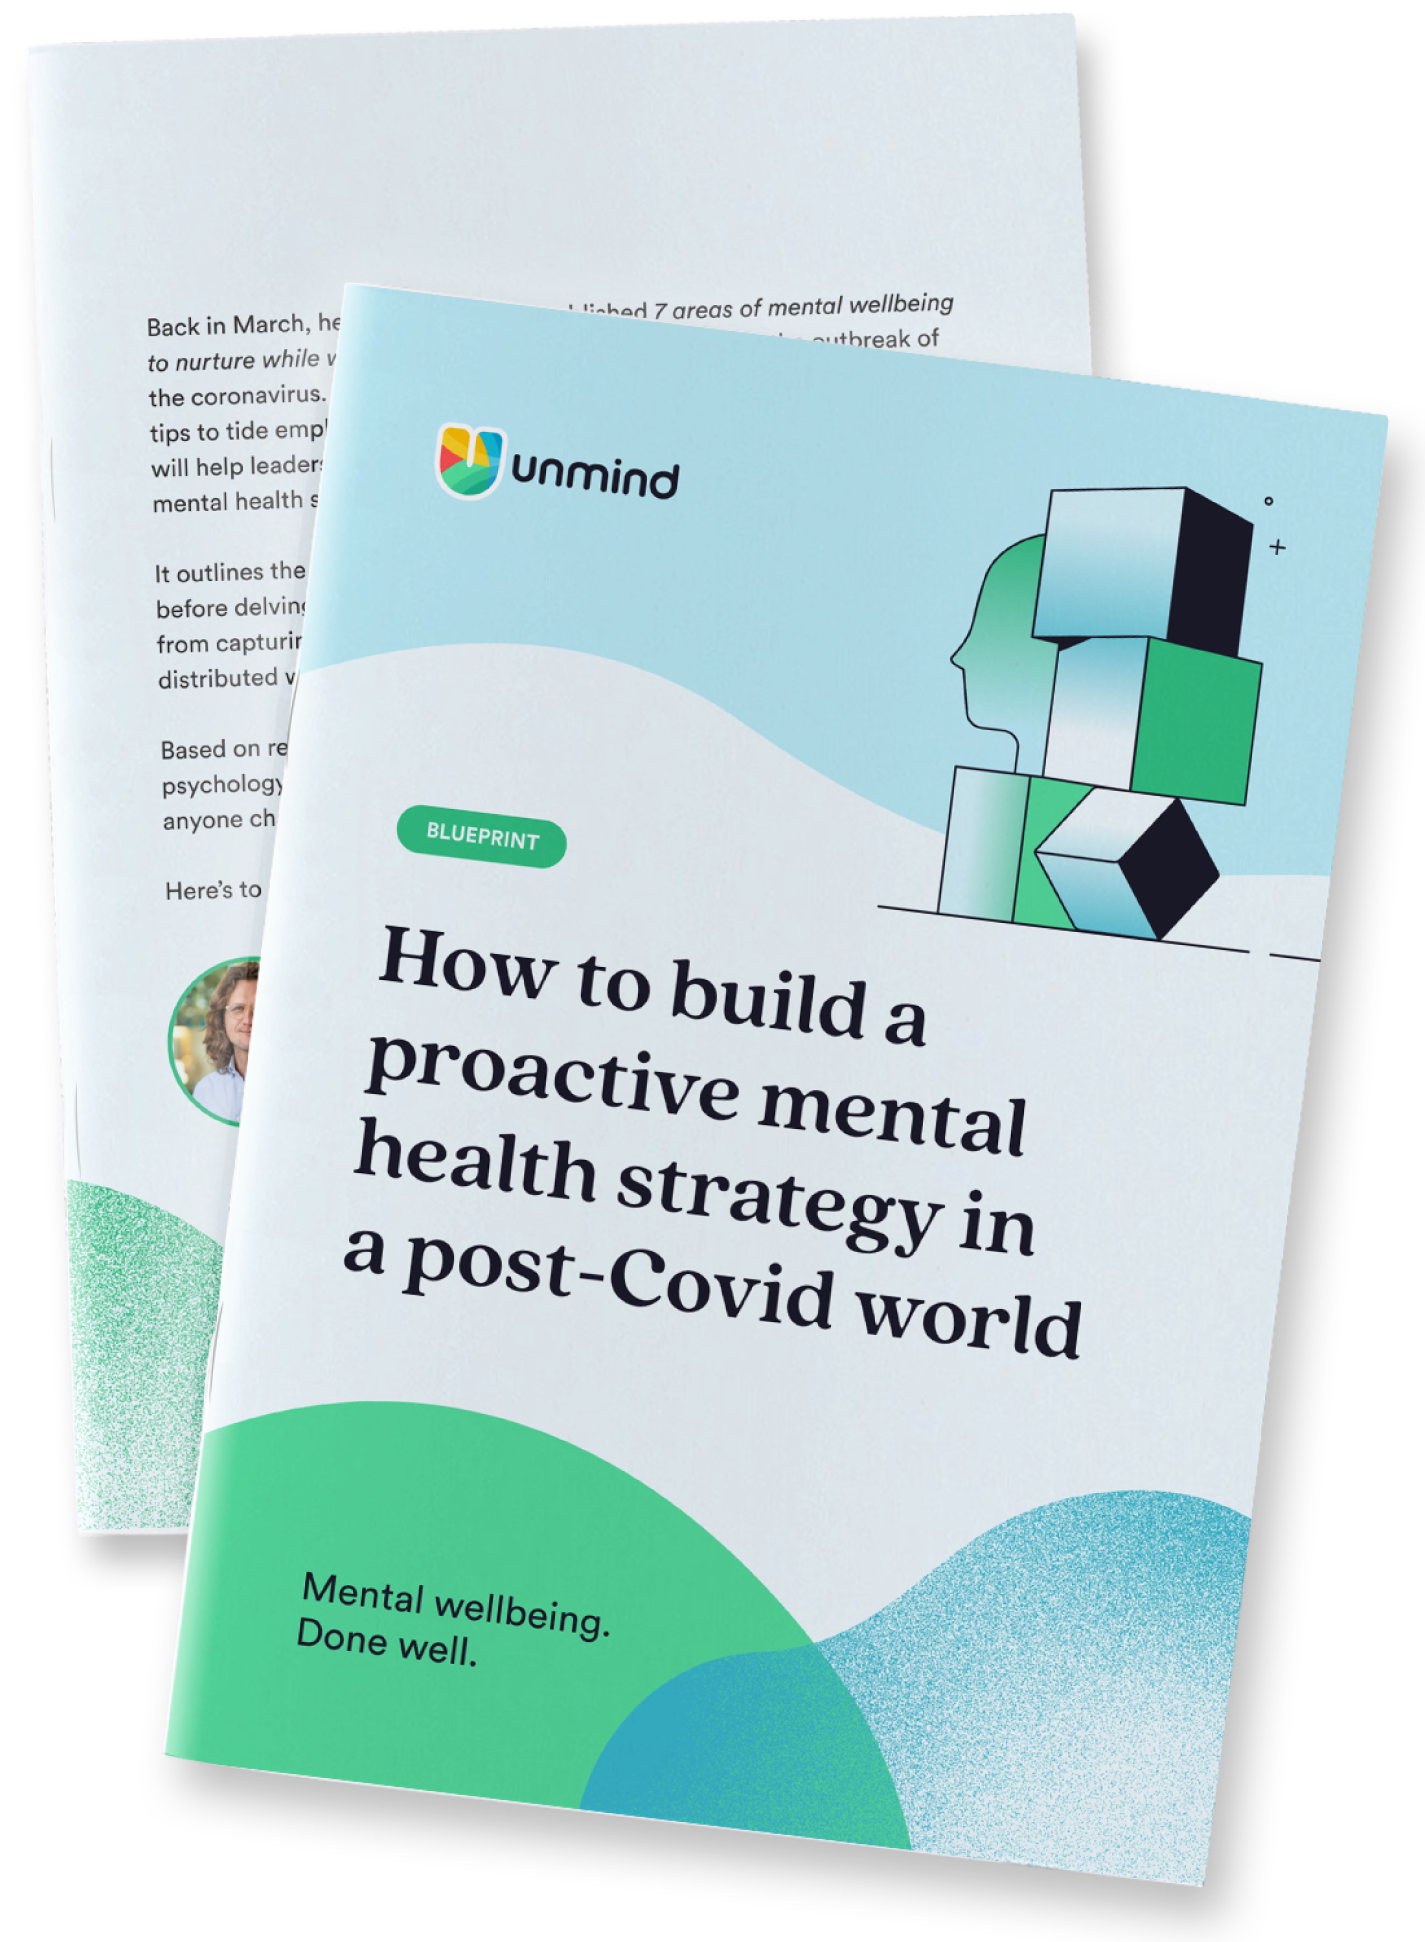 How to build a proactive MH strategy post covid (1)